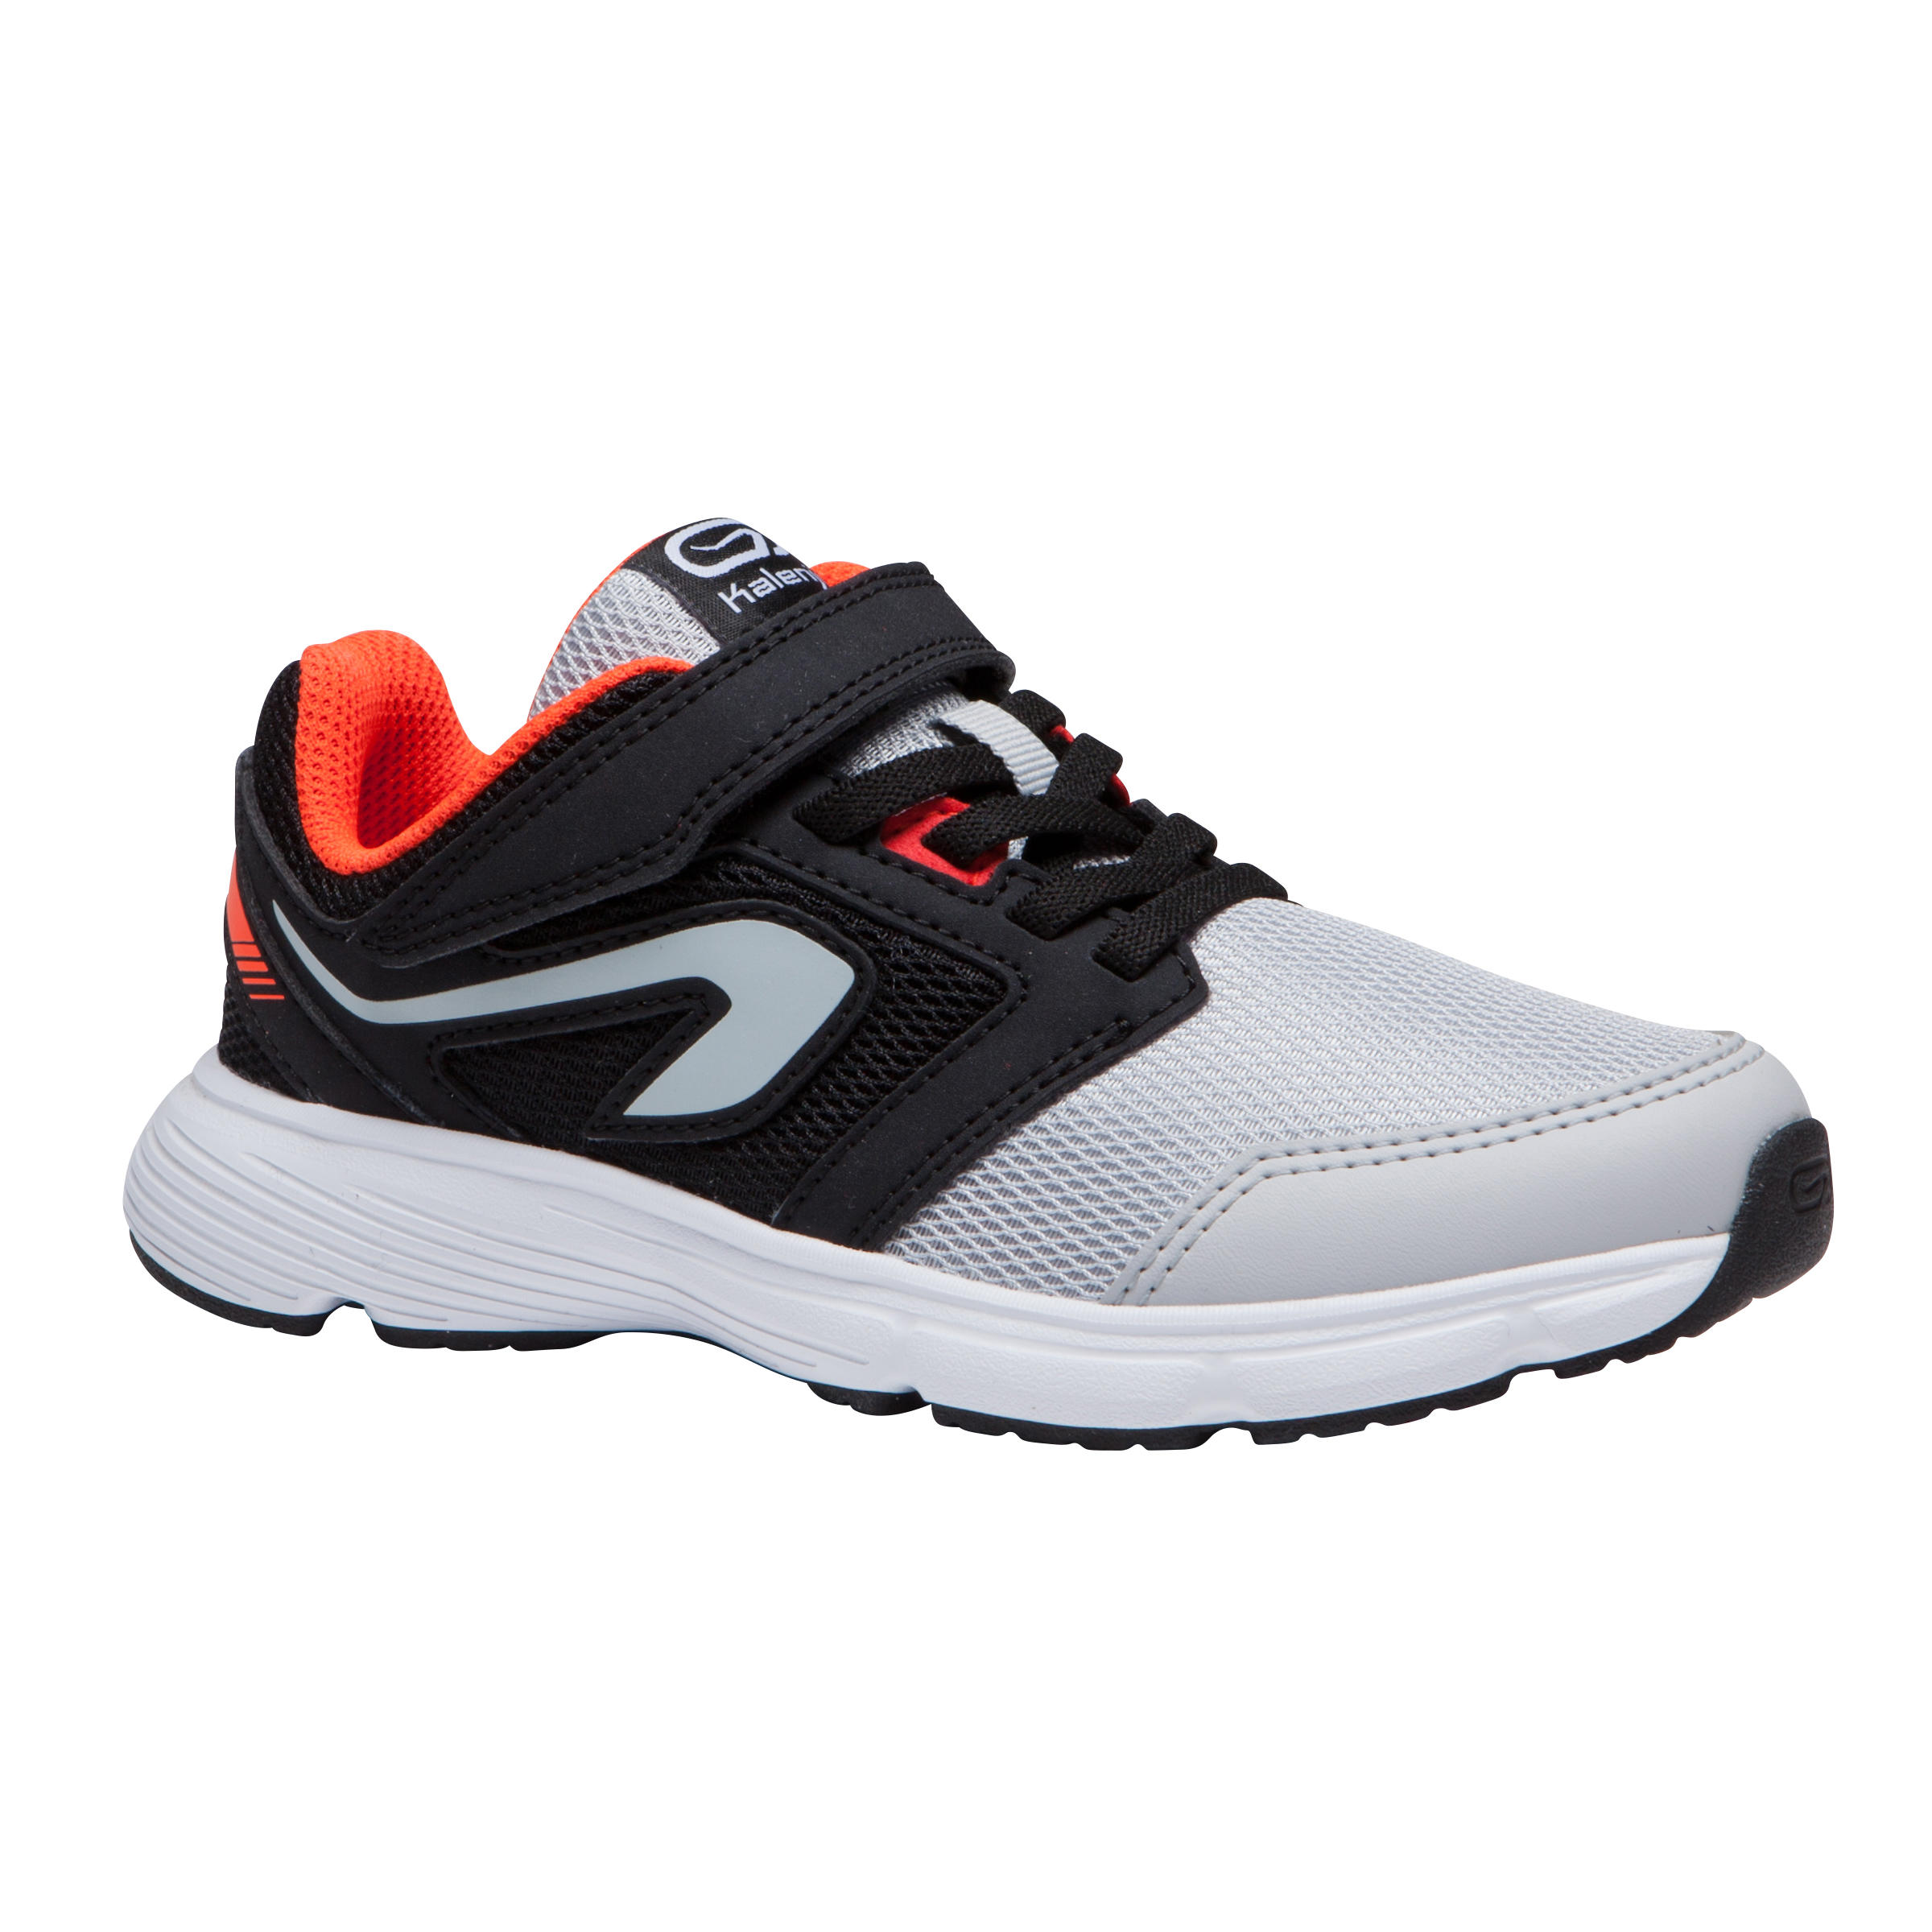 RUN SUPPORT RIP-TAB CHILDREN'S ATHLETIC SHOES - BLACK GREY ORANGE NEON